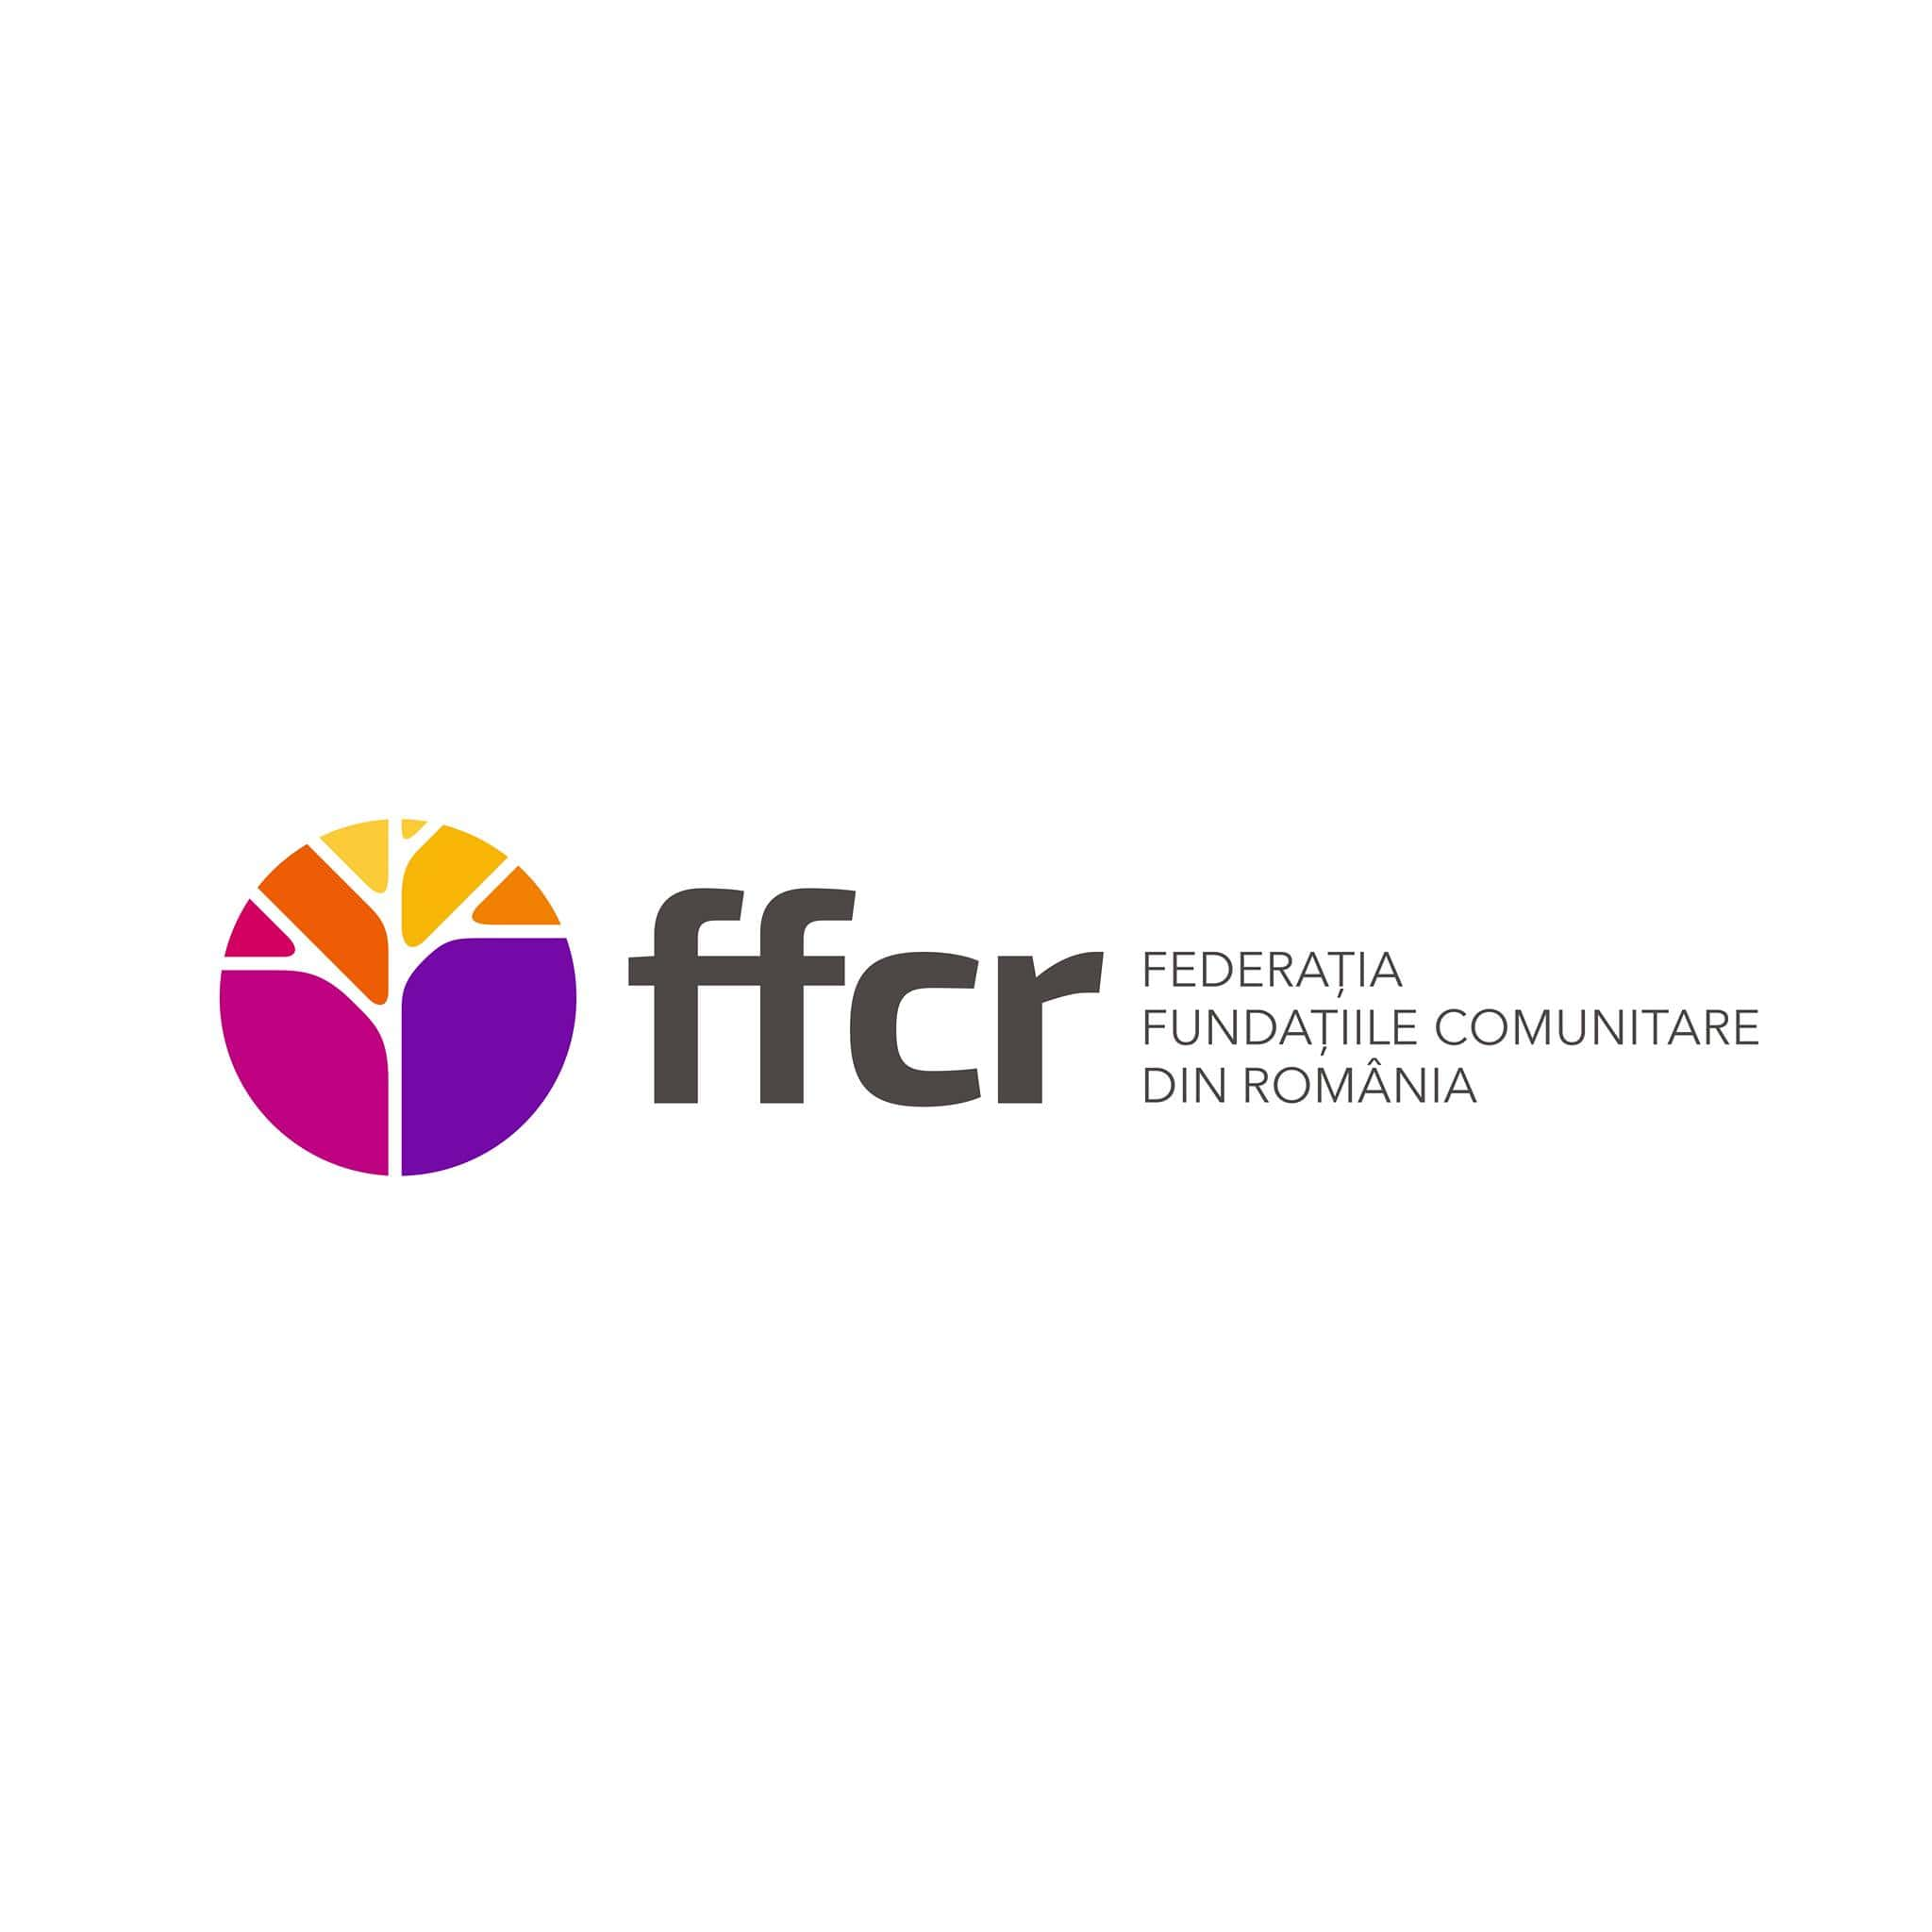 Romanian Federation for Community Foundations FFCR